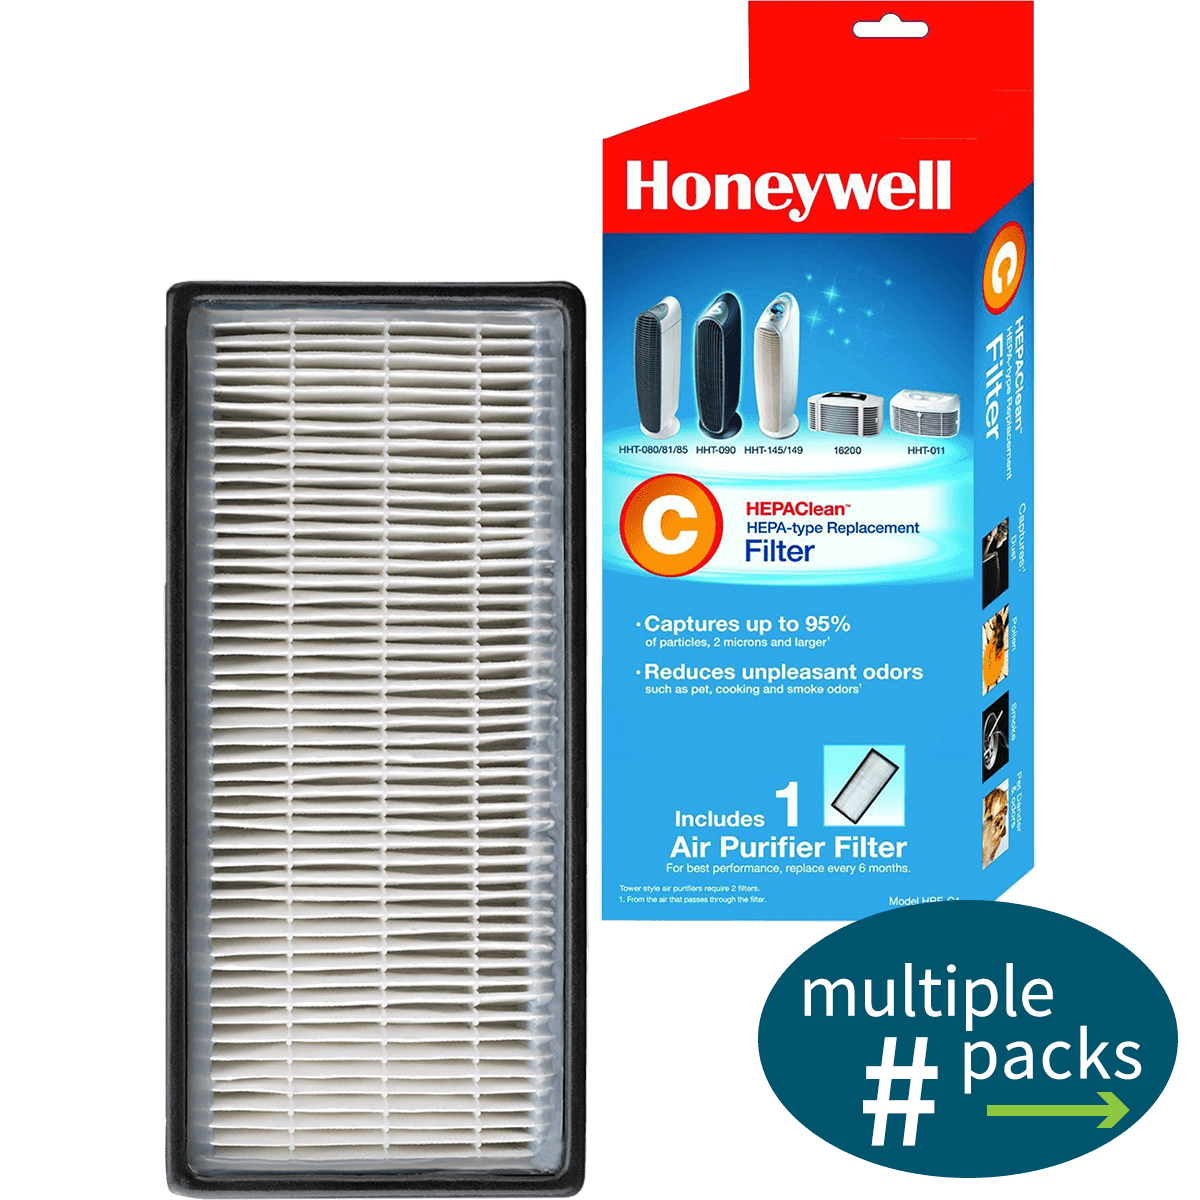 honeywell hepa clean replacement filter c sylvane. Black Bedroom Furniture Sets. Home Design Ideas